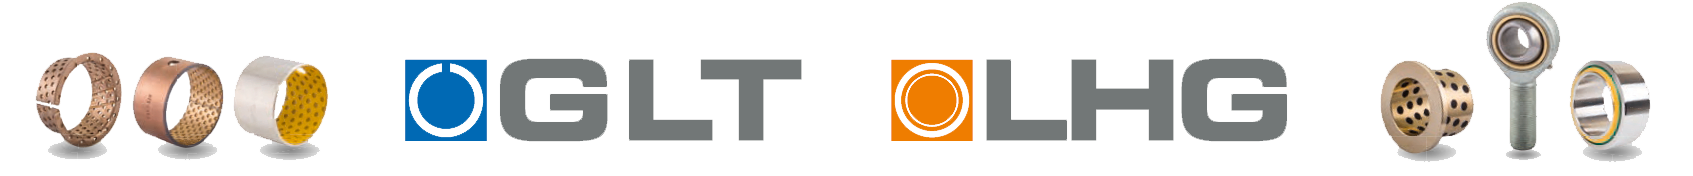 GLT Bearings Gmbh